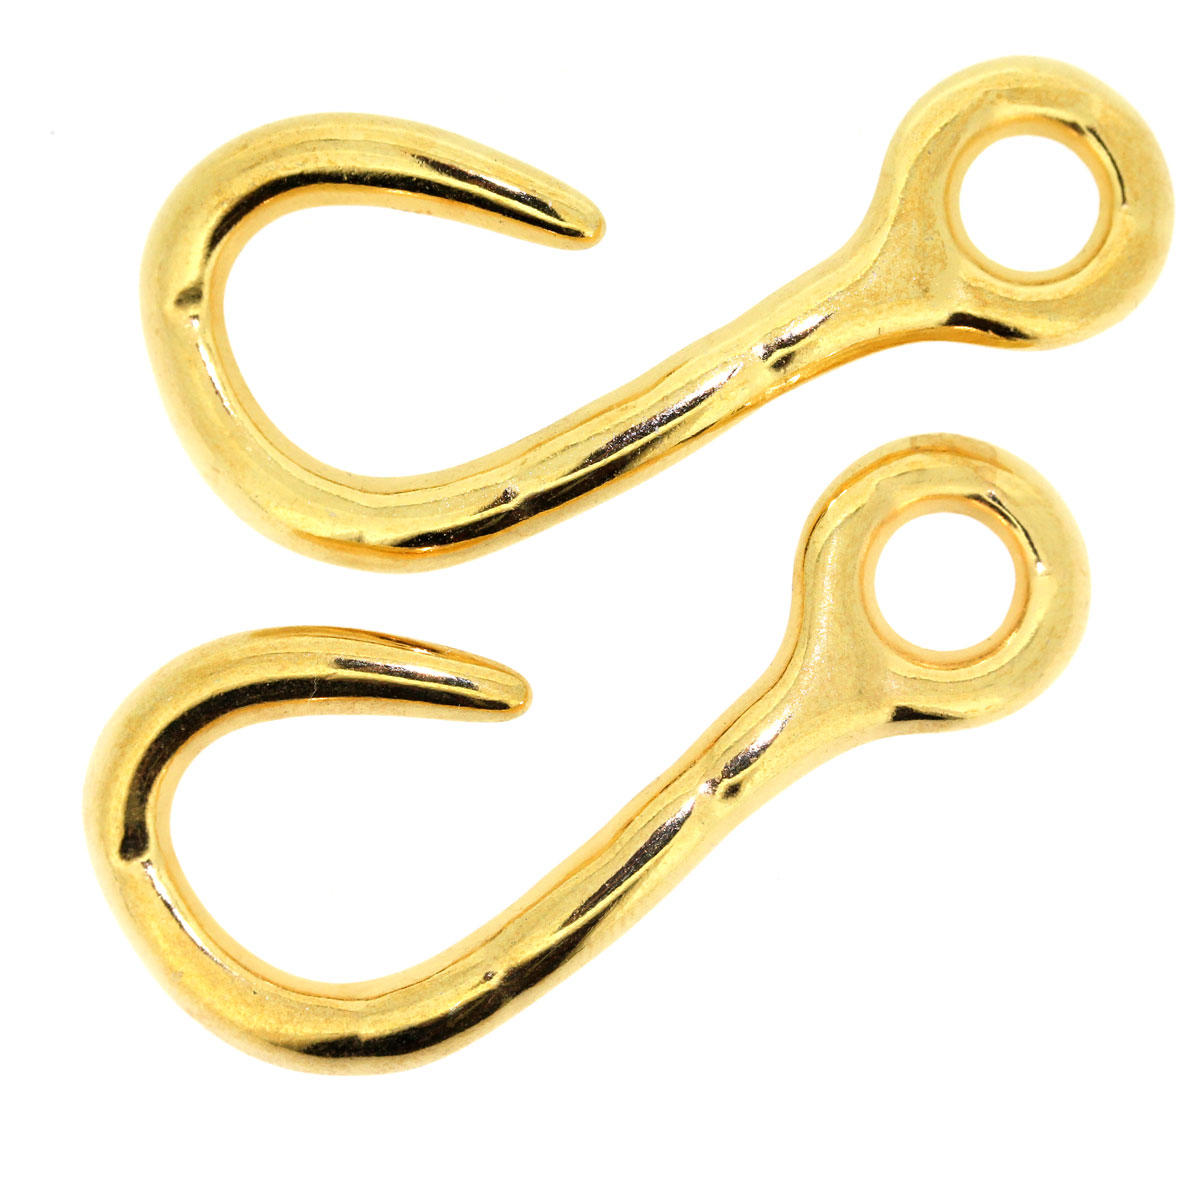 Gold Decorative Hook